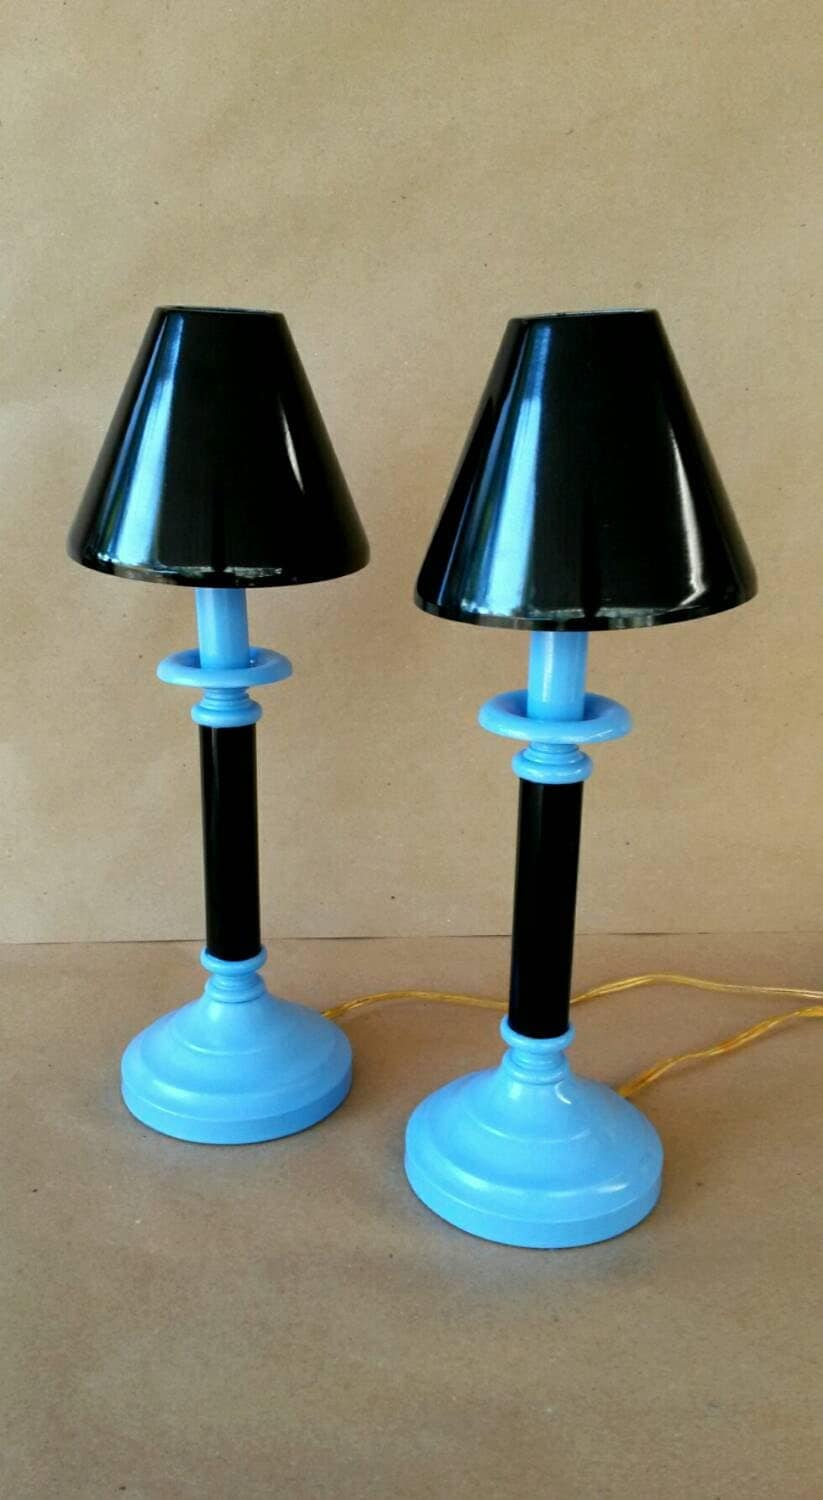 Bedside Lamps Nightstand Lamp Small Reading Light Blue Amp Black